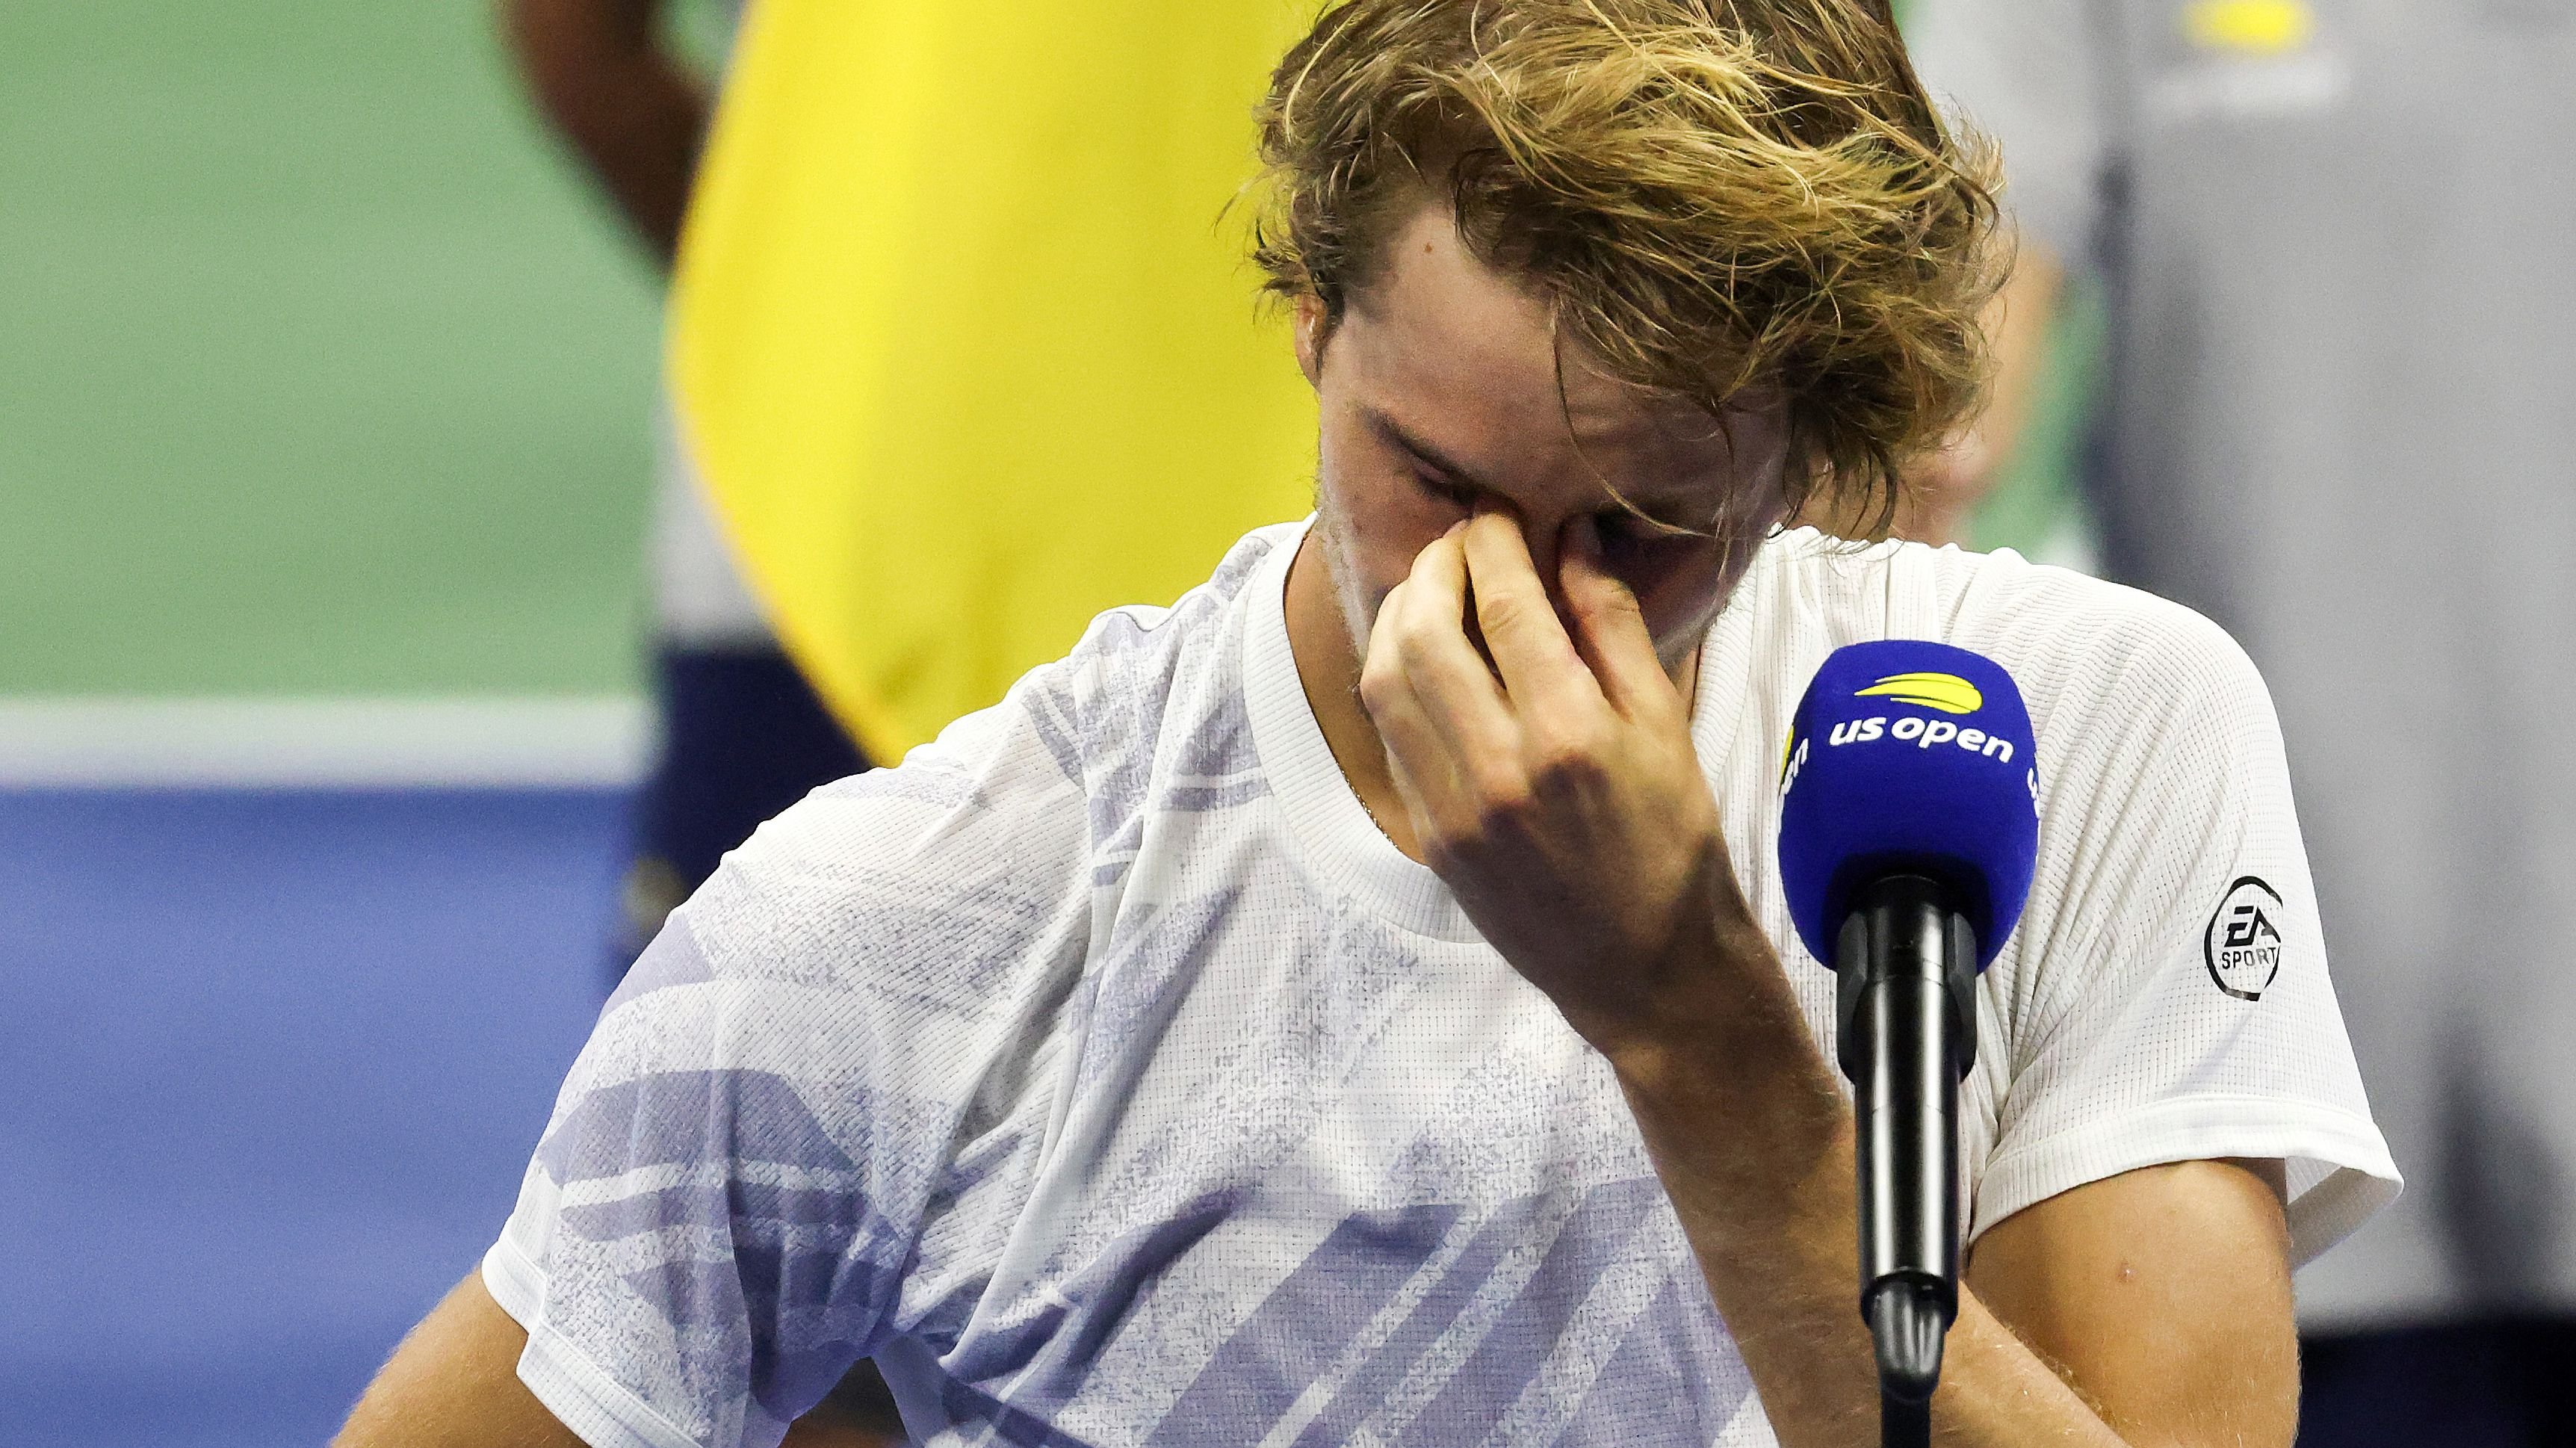 EXCLUSIVE: The brutal reality facing Alexander Zverev after crushing US Open loss